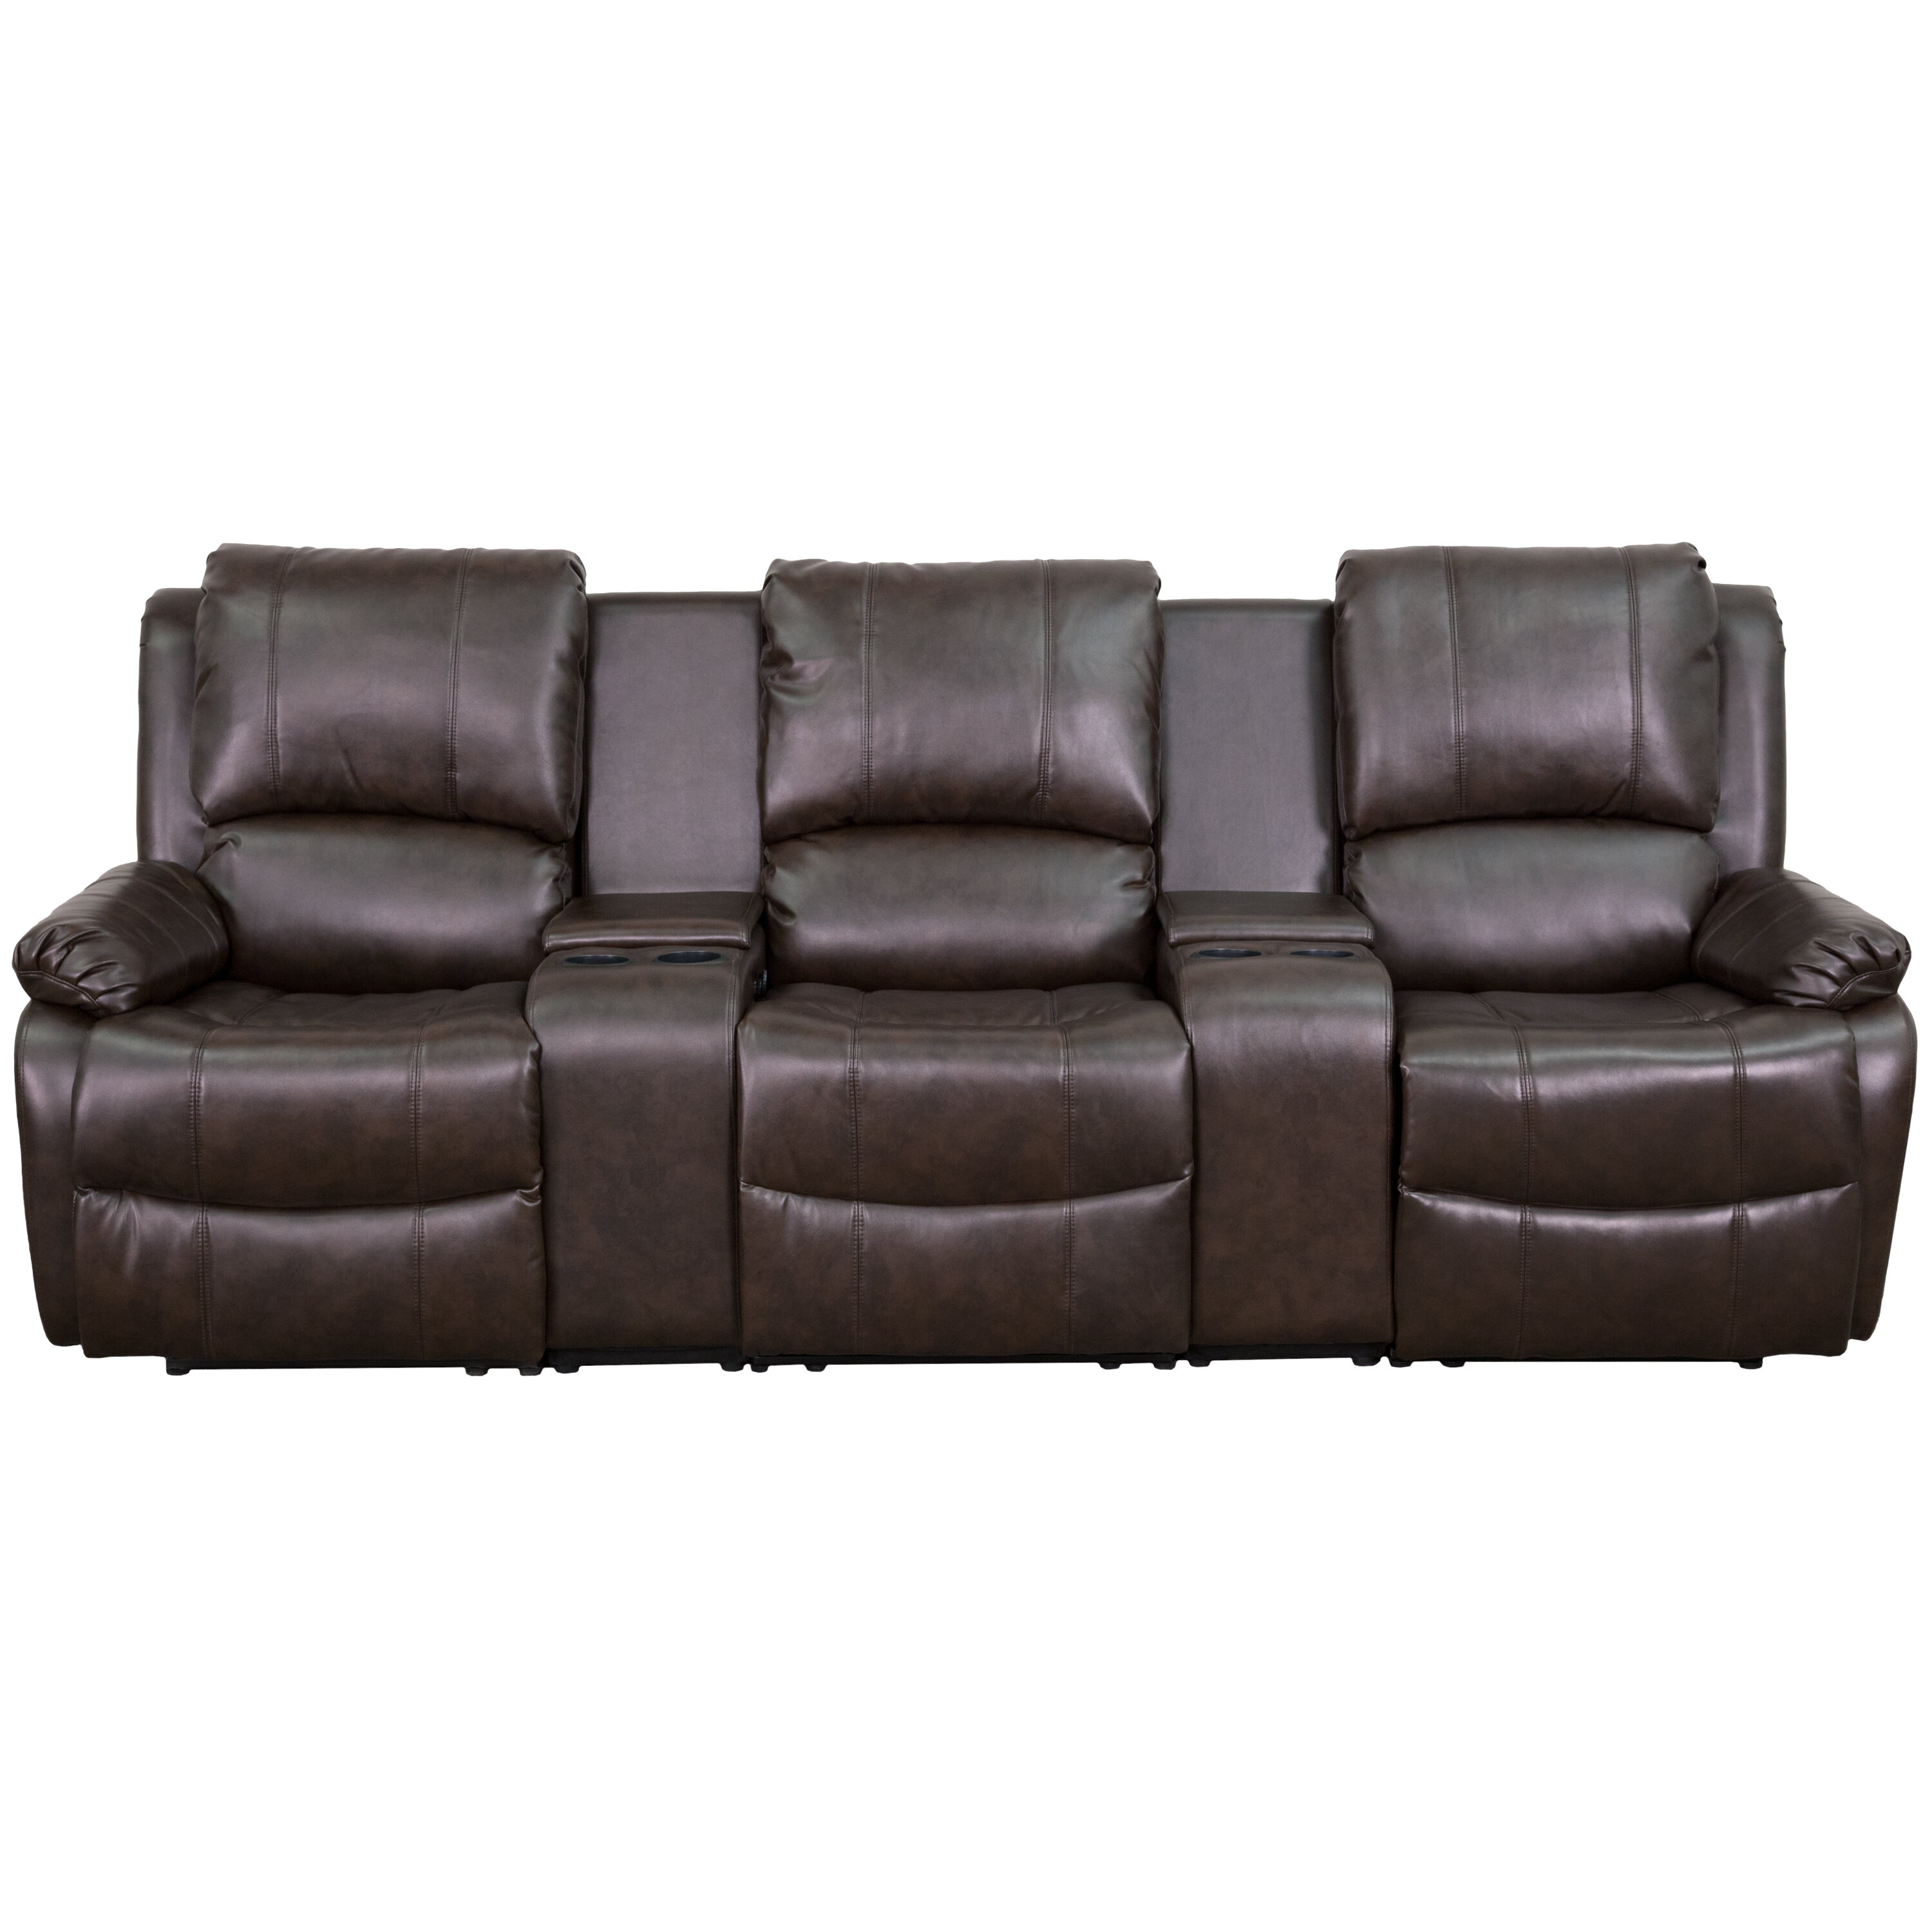 Red Barrel Studio Leather Home Theater Sofa & Reviews | Wayfair